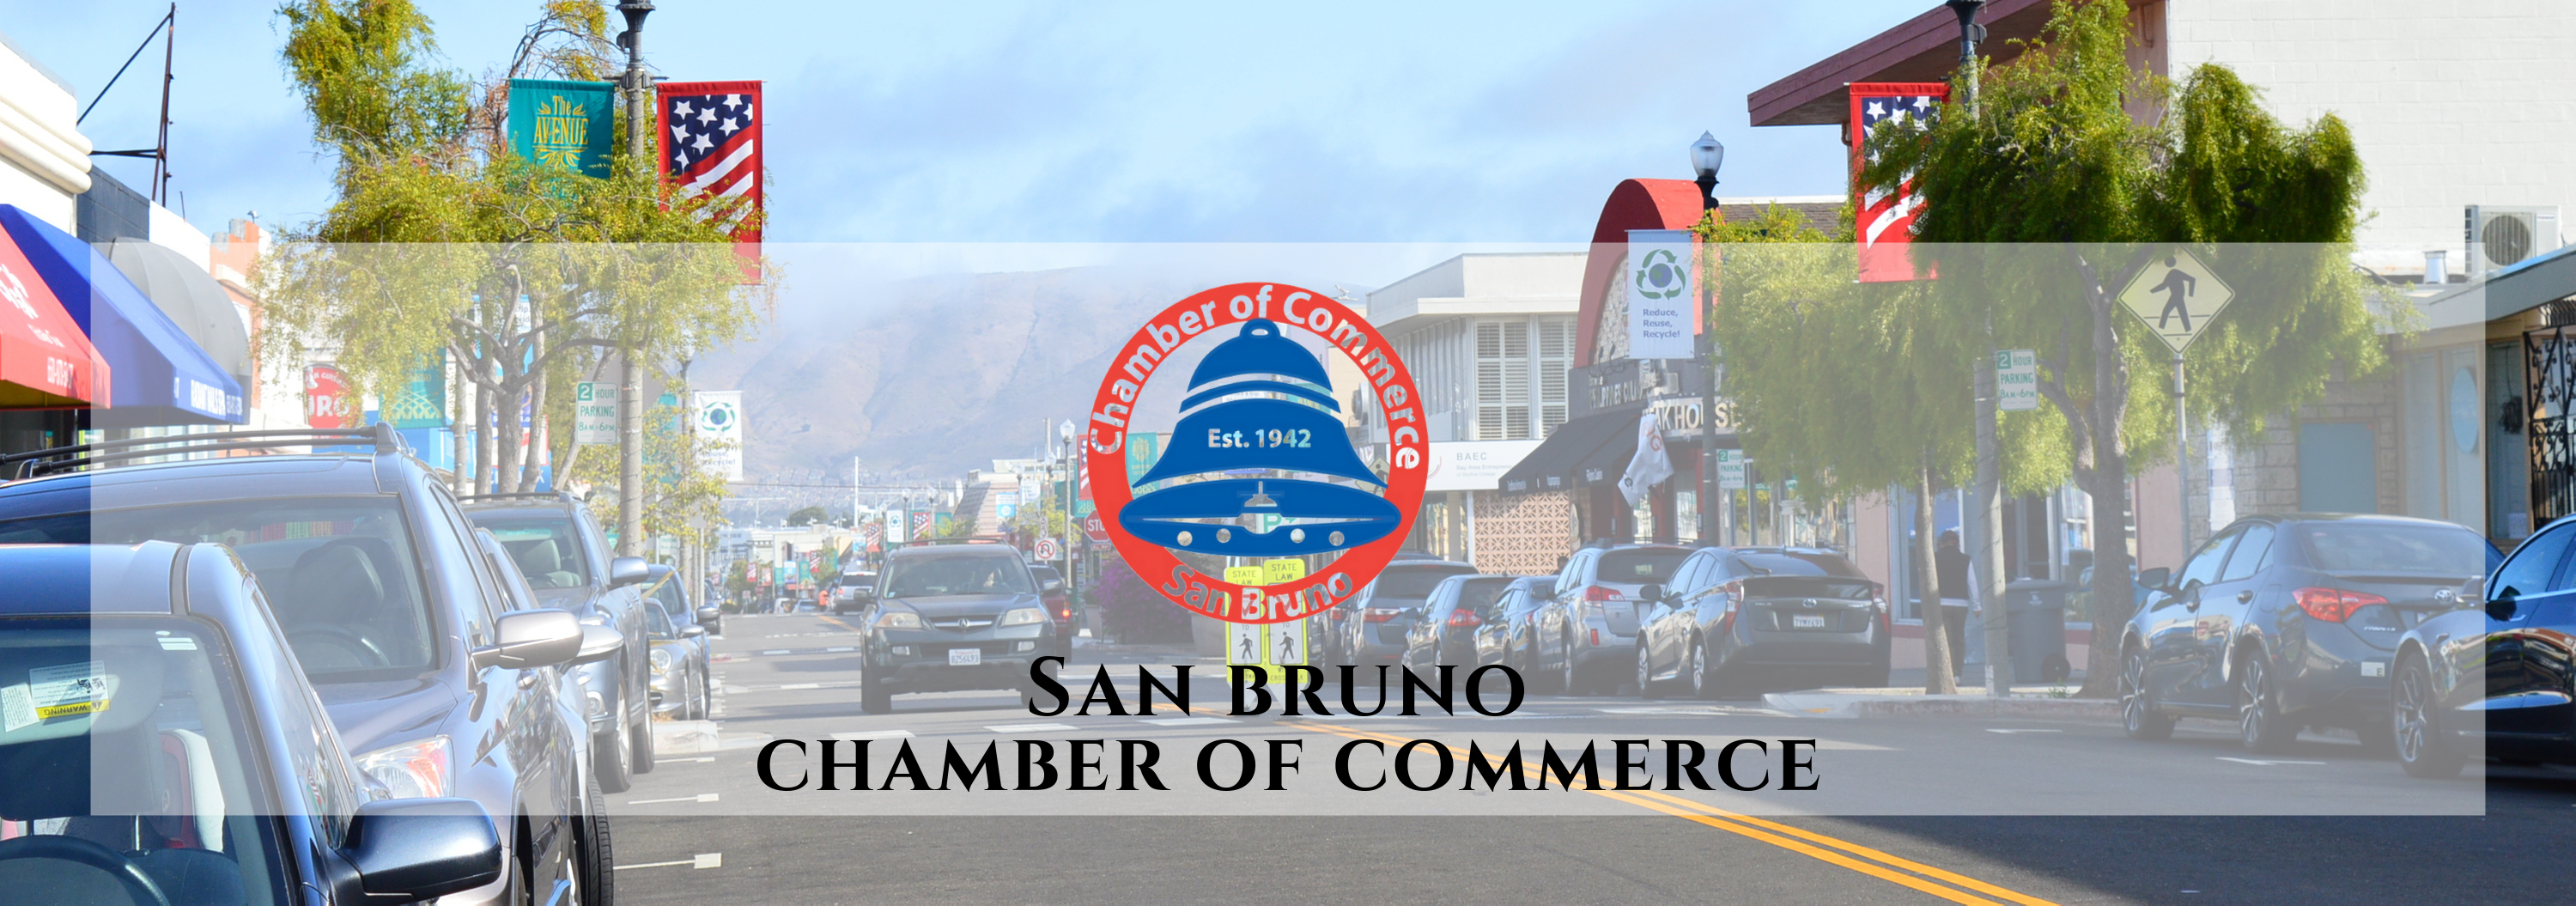 San Bruno Chamber of Commerce